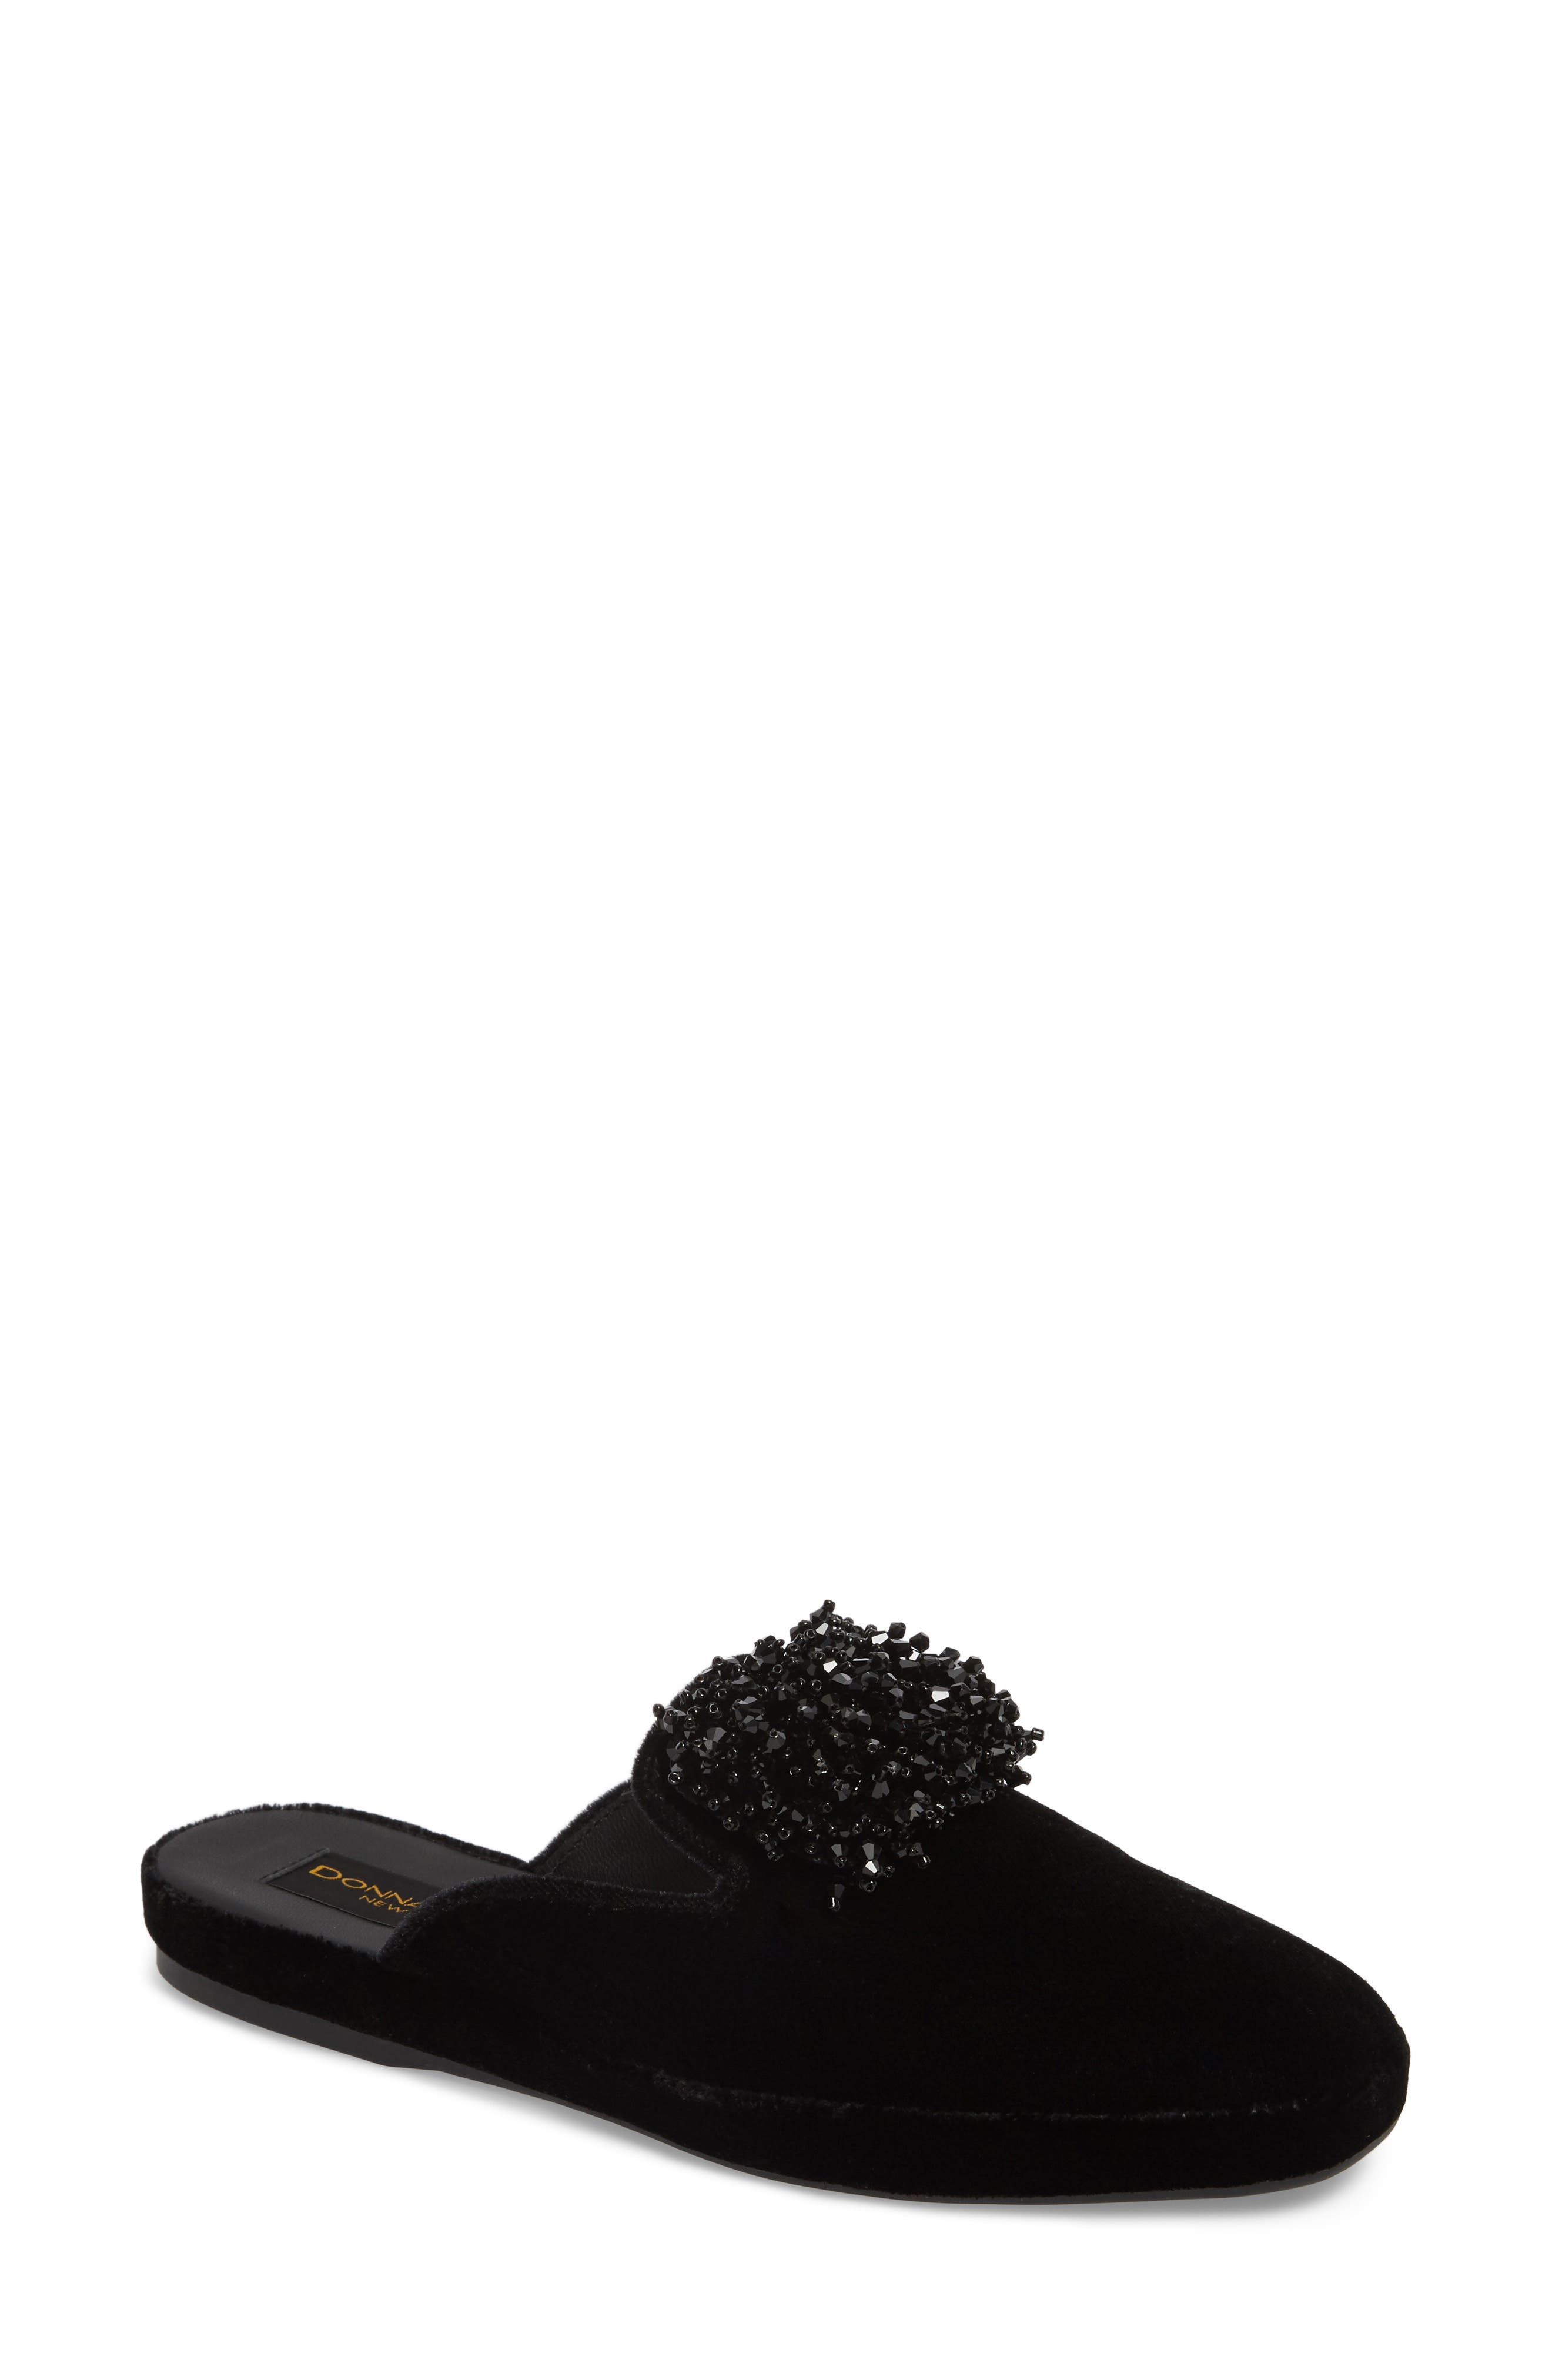 Donna Karan Cara Embellished Mule,                         Main,                         color, 001